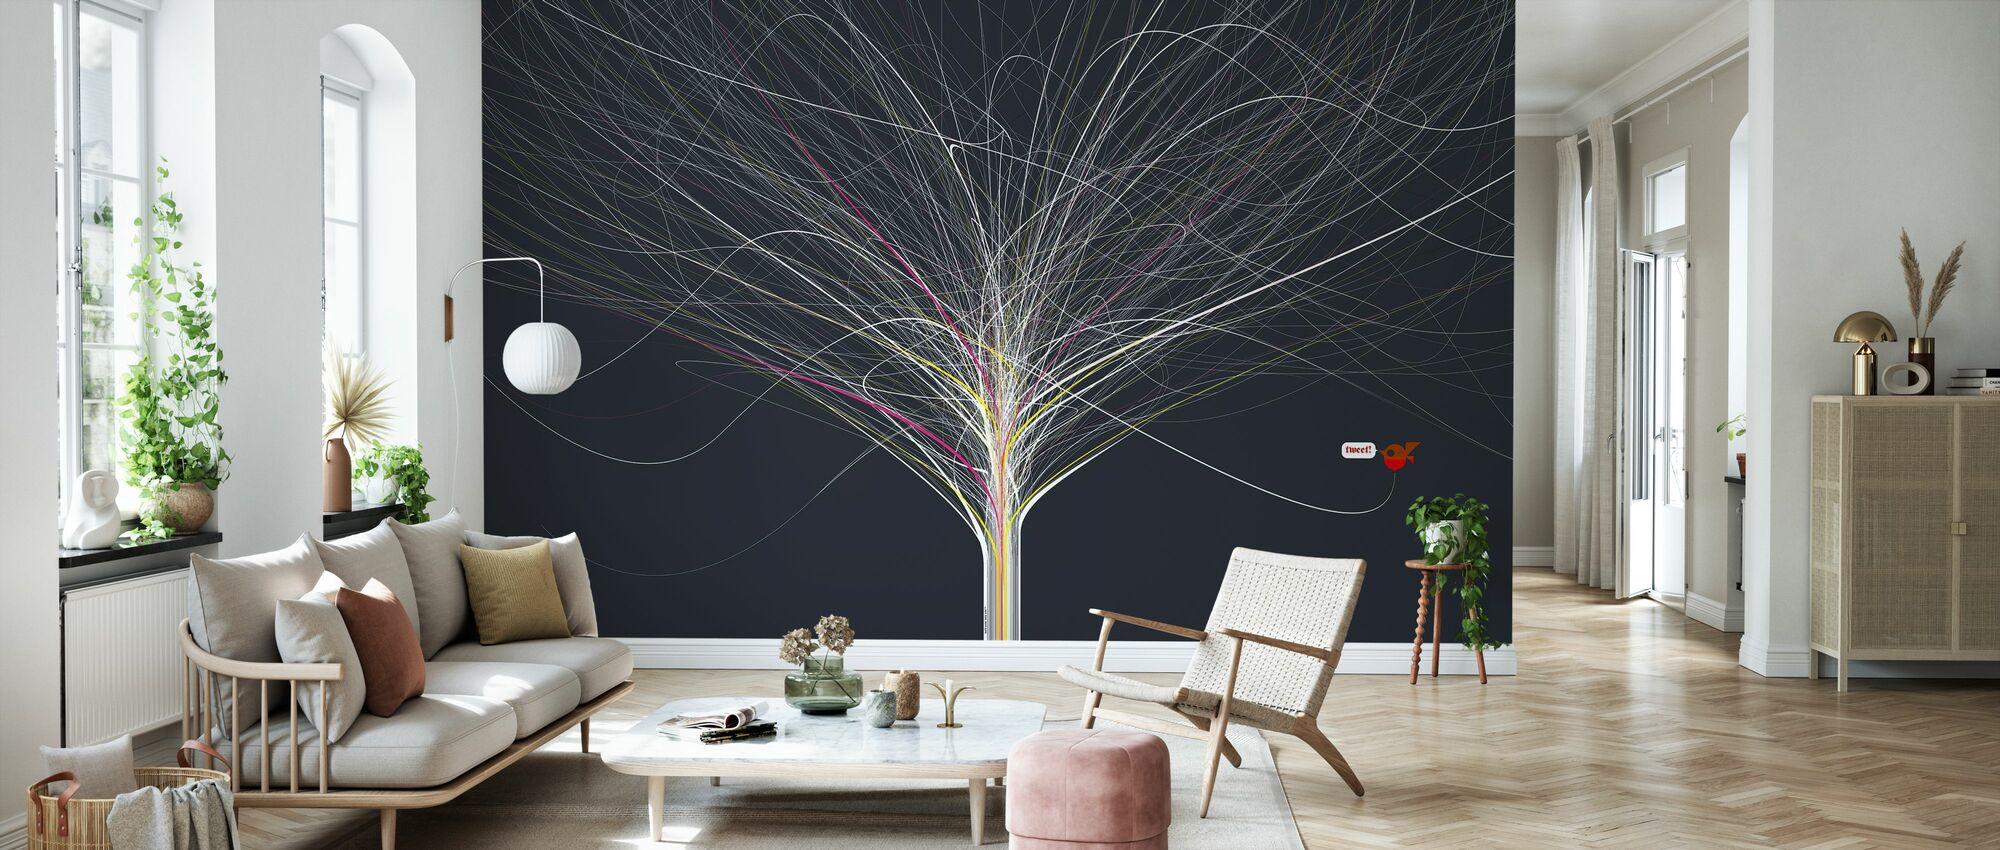 Build - Singing Singing Tree - Wallpaper - Living Room